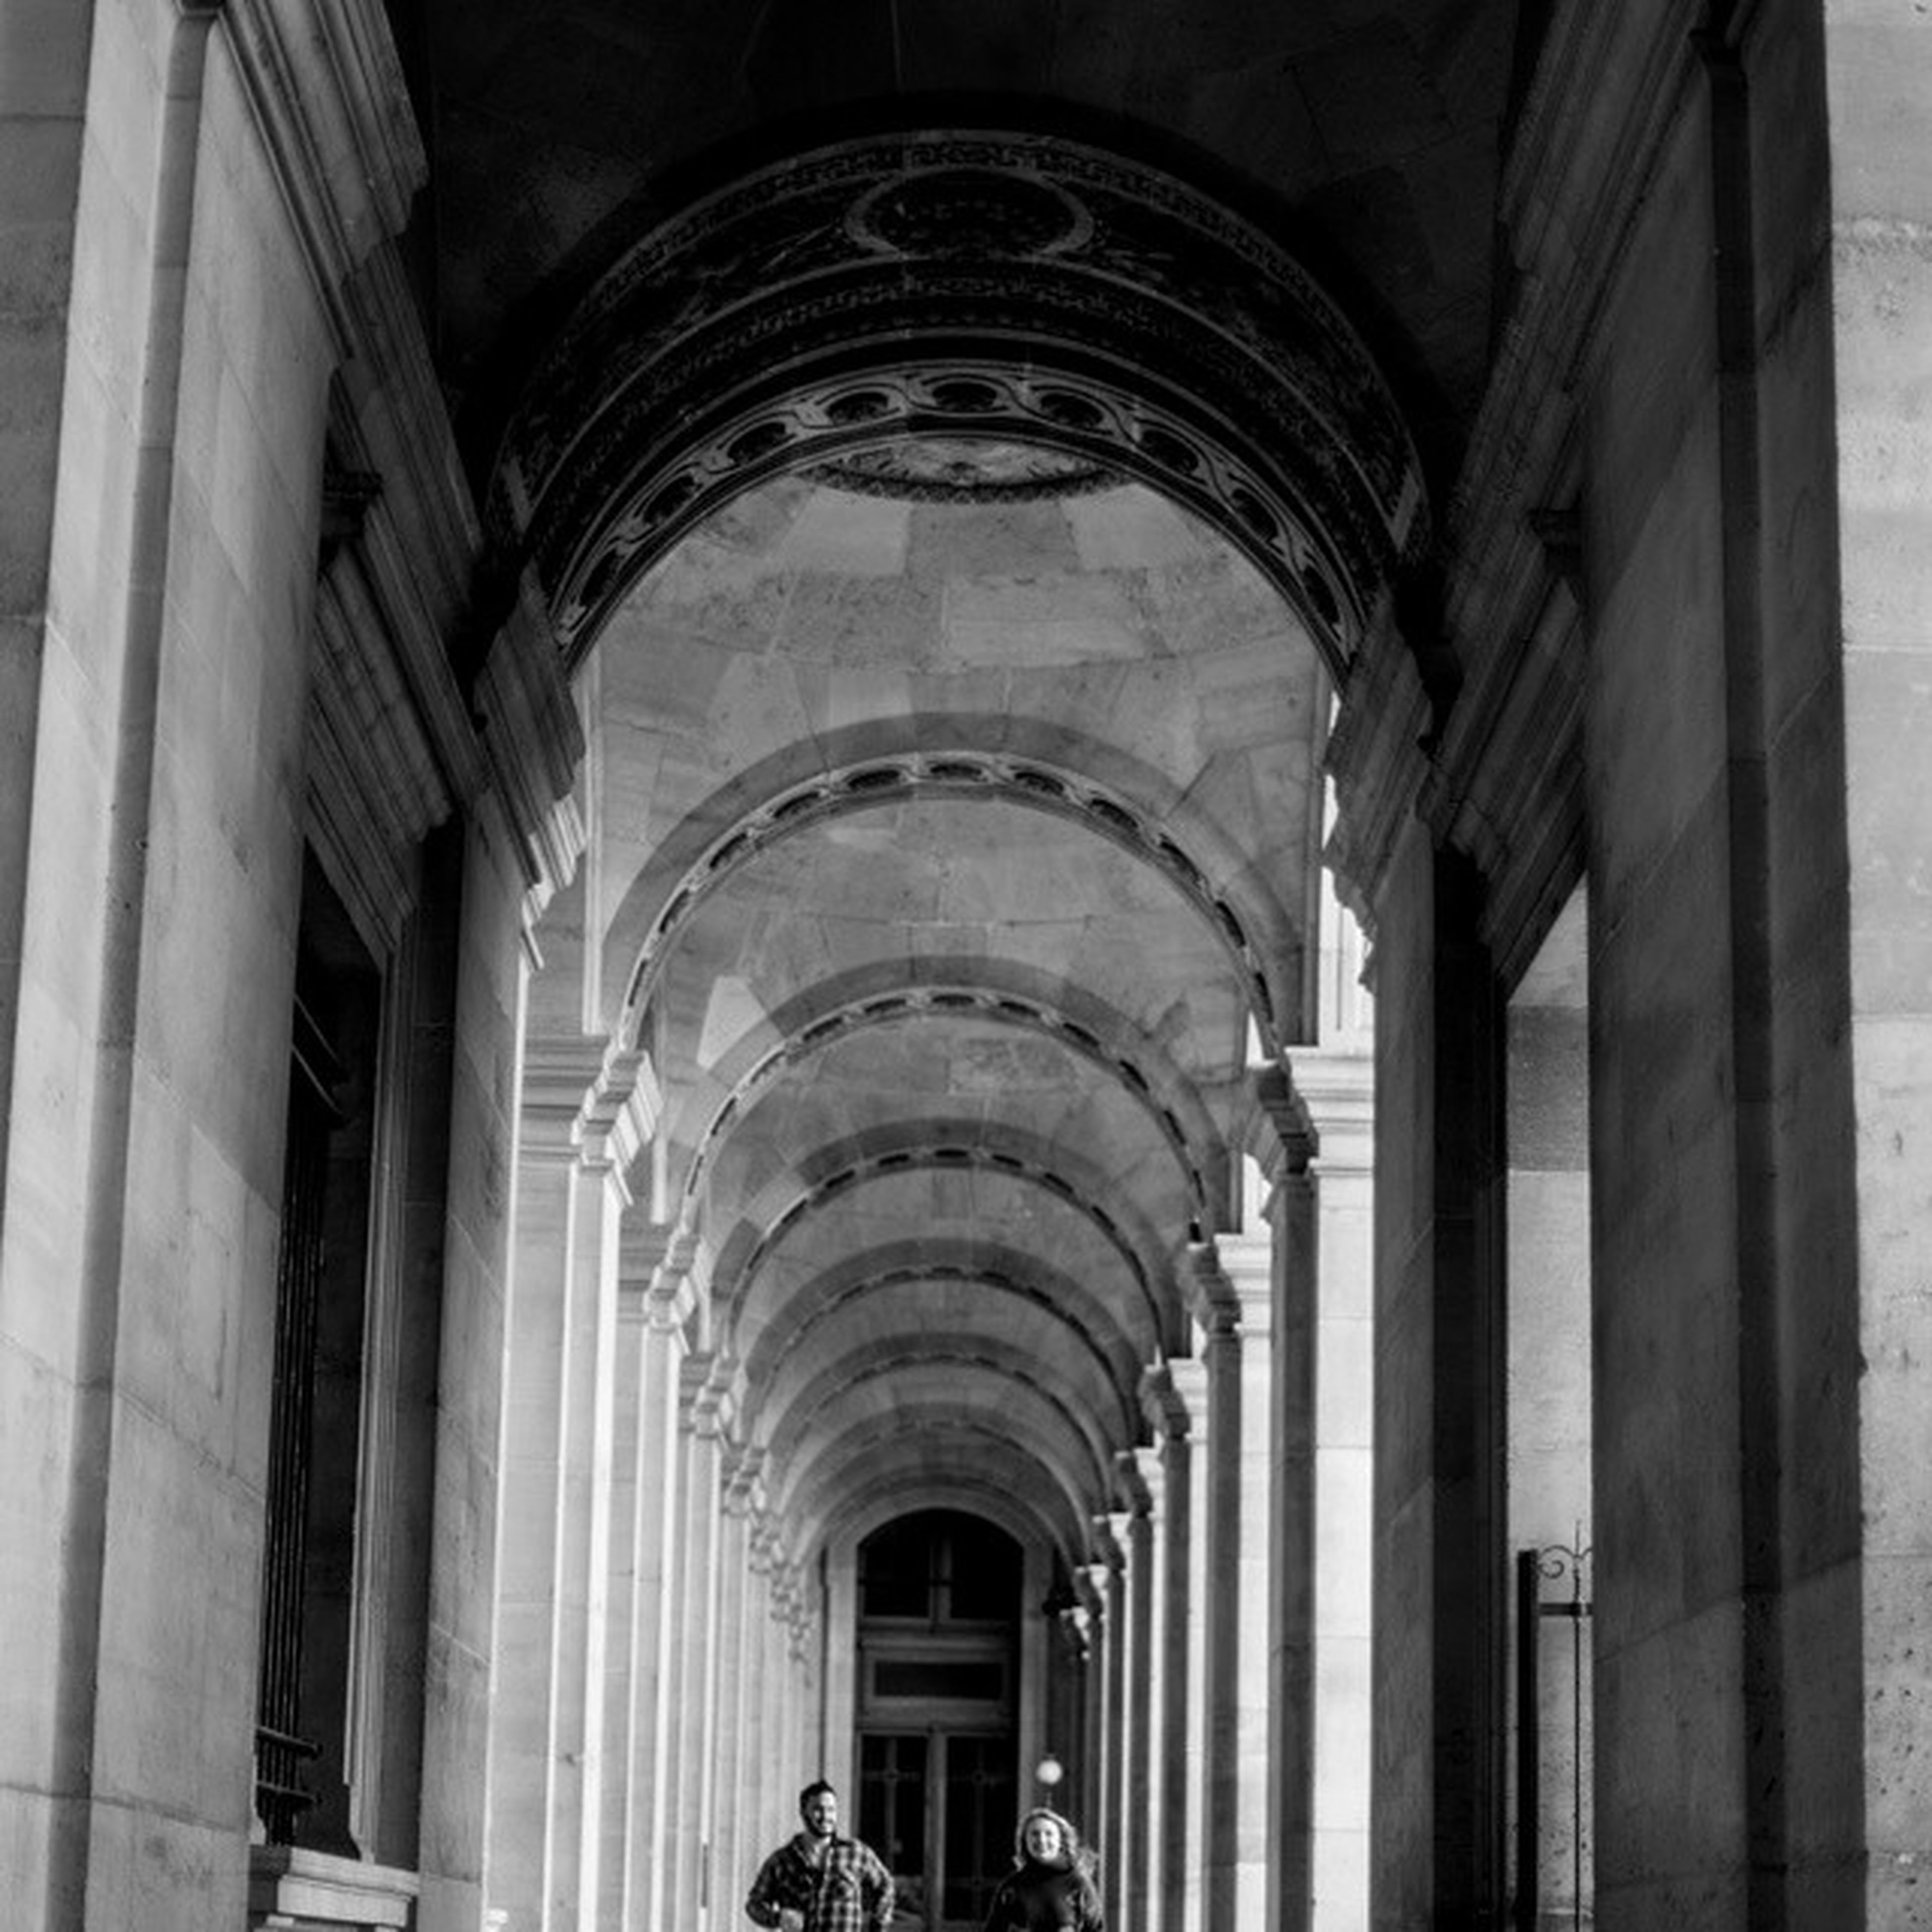 indoors, arch, architecture, built structure, architectural column, ceiling, column, history, low angle view, corridor, colonnade, interior, architectural feature, in a row, building, historic, window, famous place, travel destinations, ornate